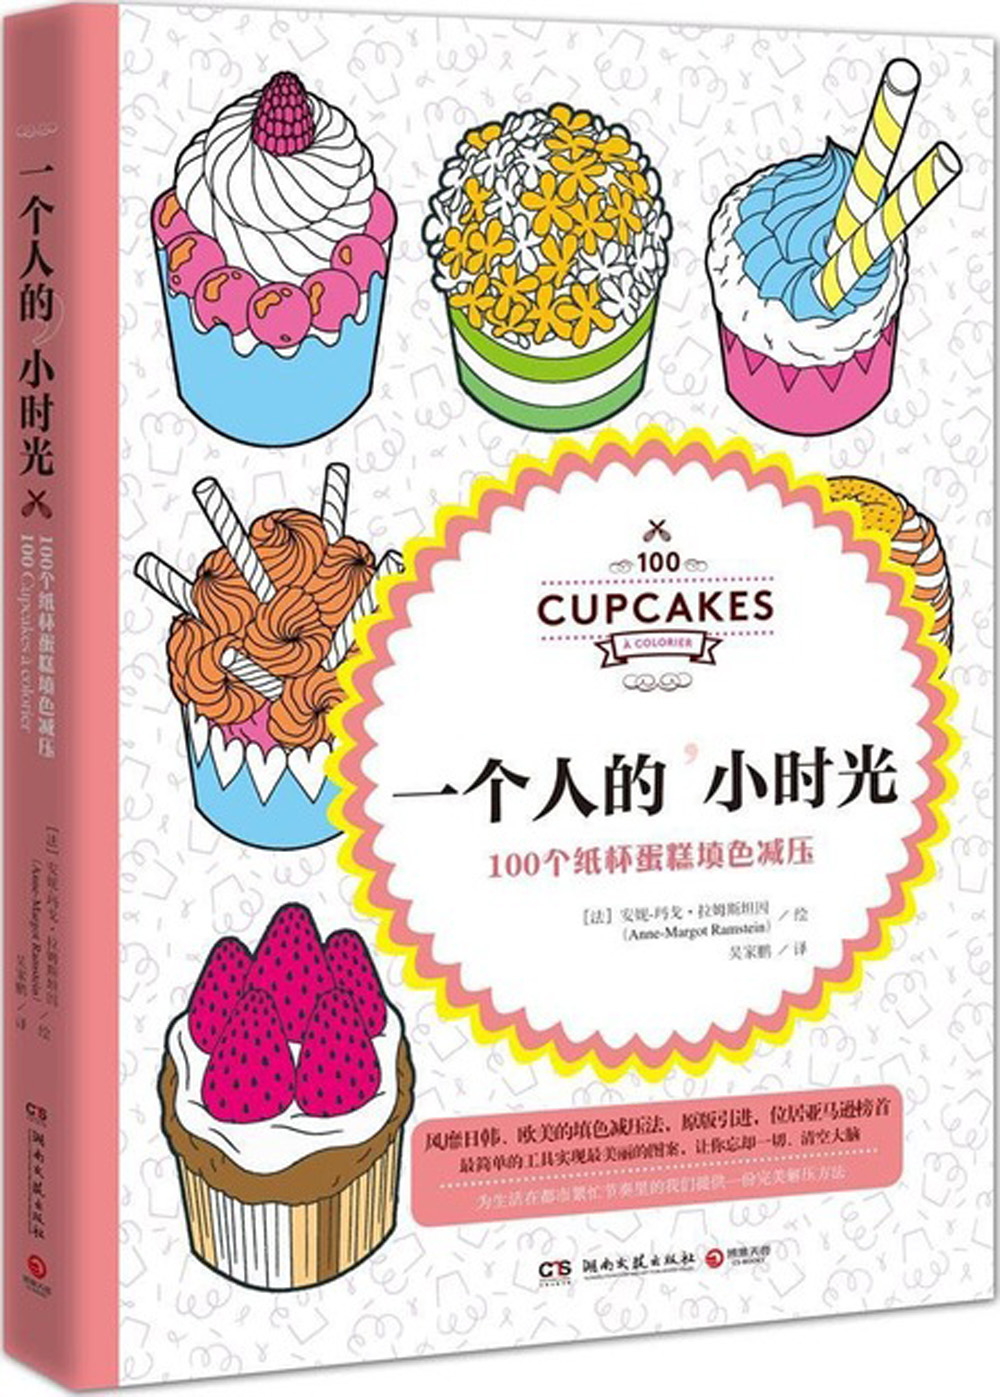 100 Cupcakes a Colorier Anti-Stress coloring book for Adults Relieve Stress Picture Painting Drawing Colouring Page Books Gifts the creative coloring book for adults relieve stress picture book painting drawing relax adult coloring books in total 4